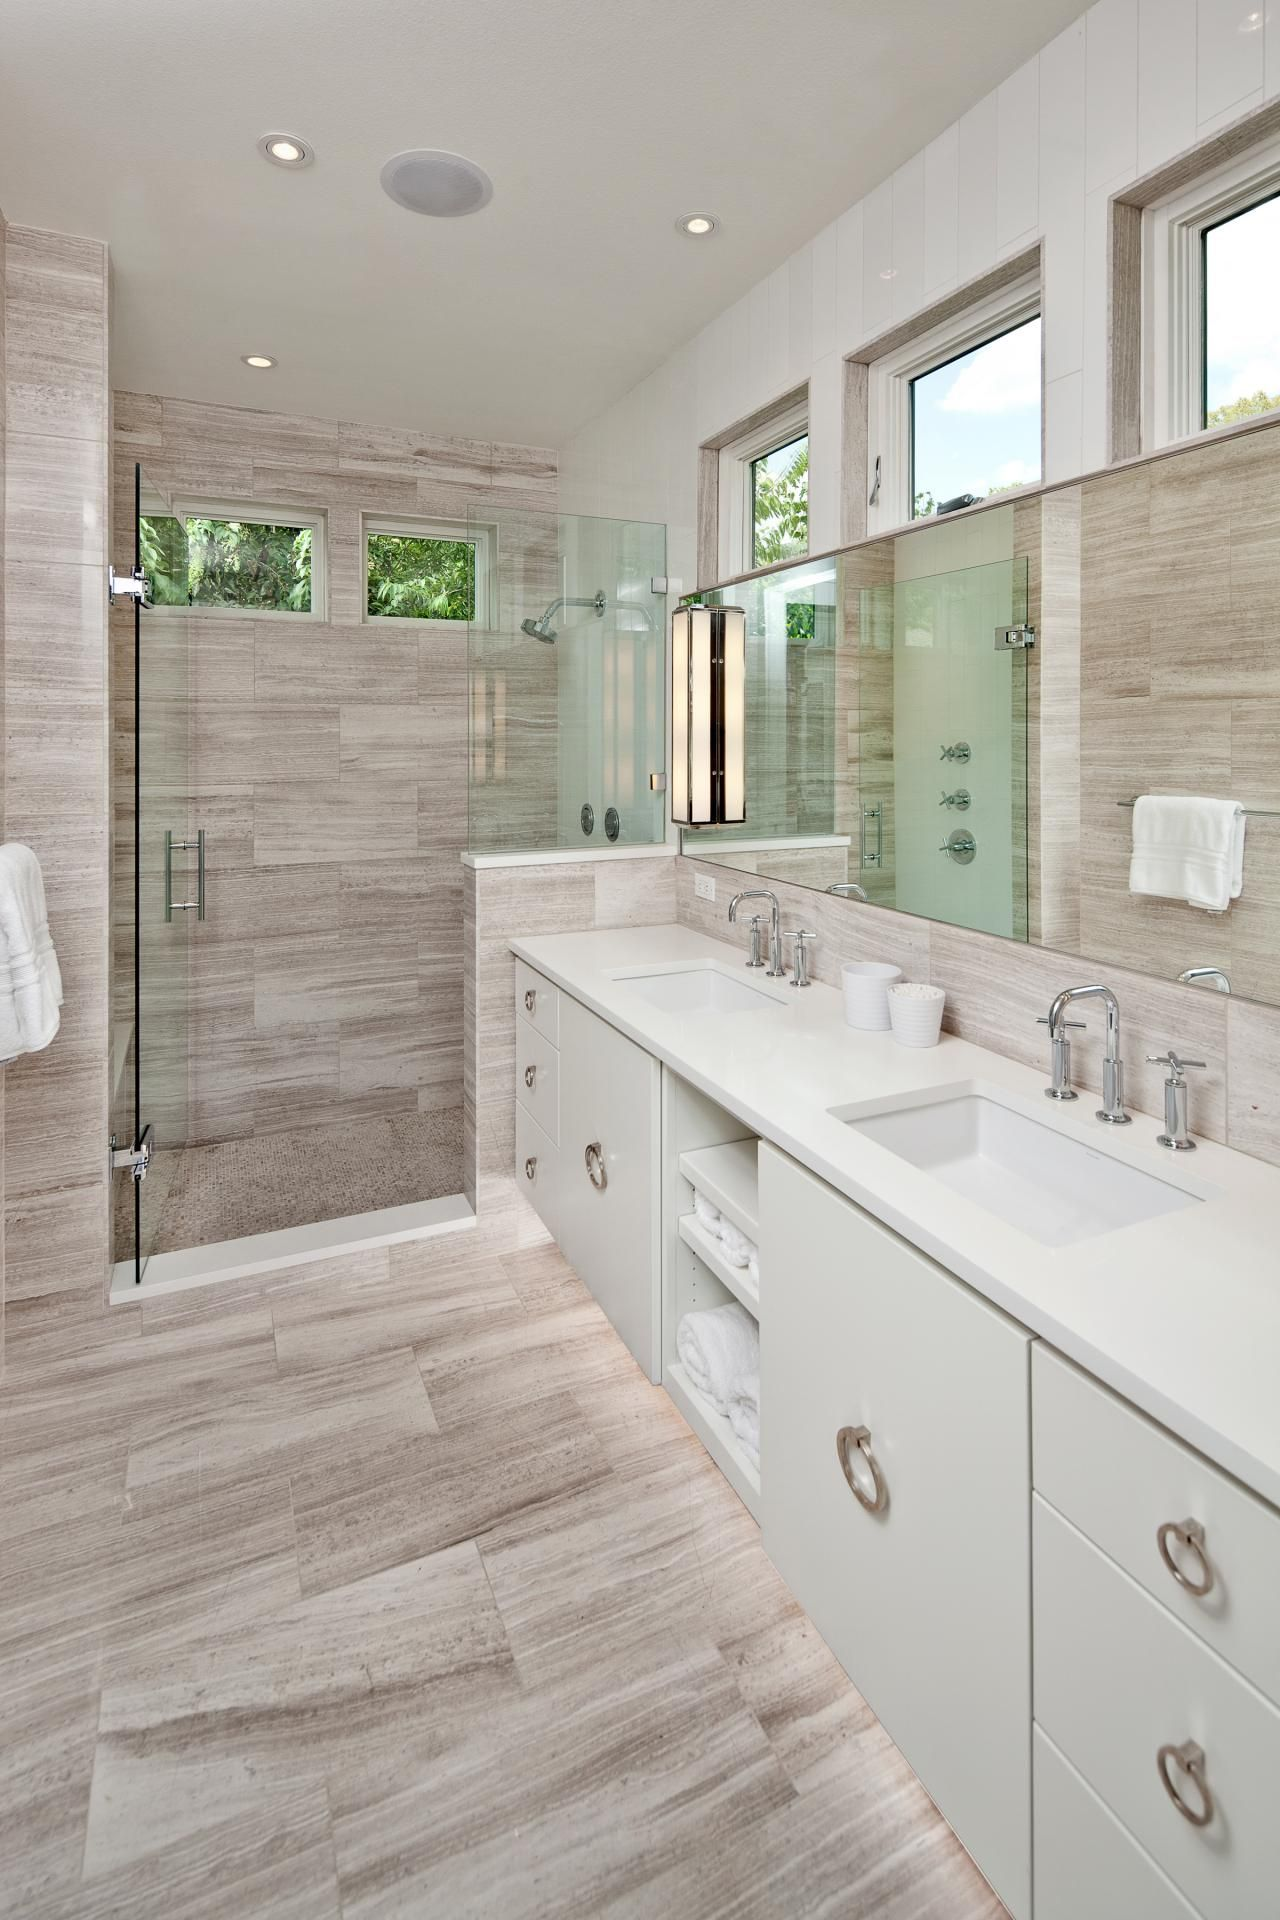 Gray And White Modern Spa Bathroom With Walk In Shower Wood Tile Bathroom Bathroom Spa Bathroom Tile Designs